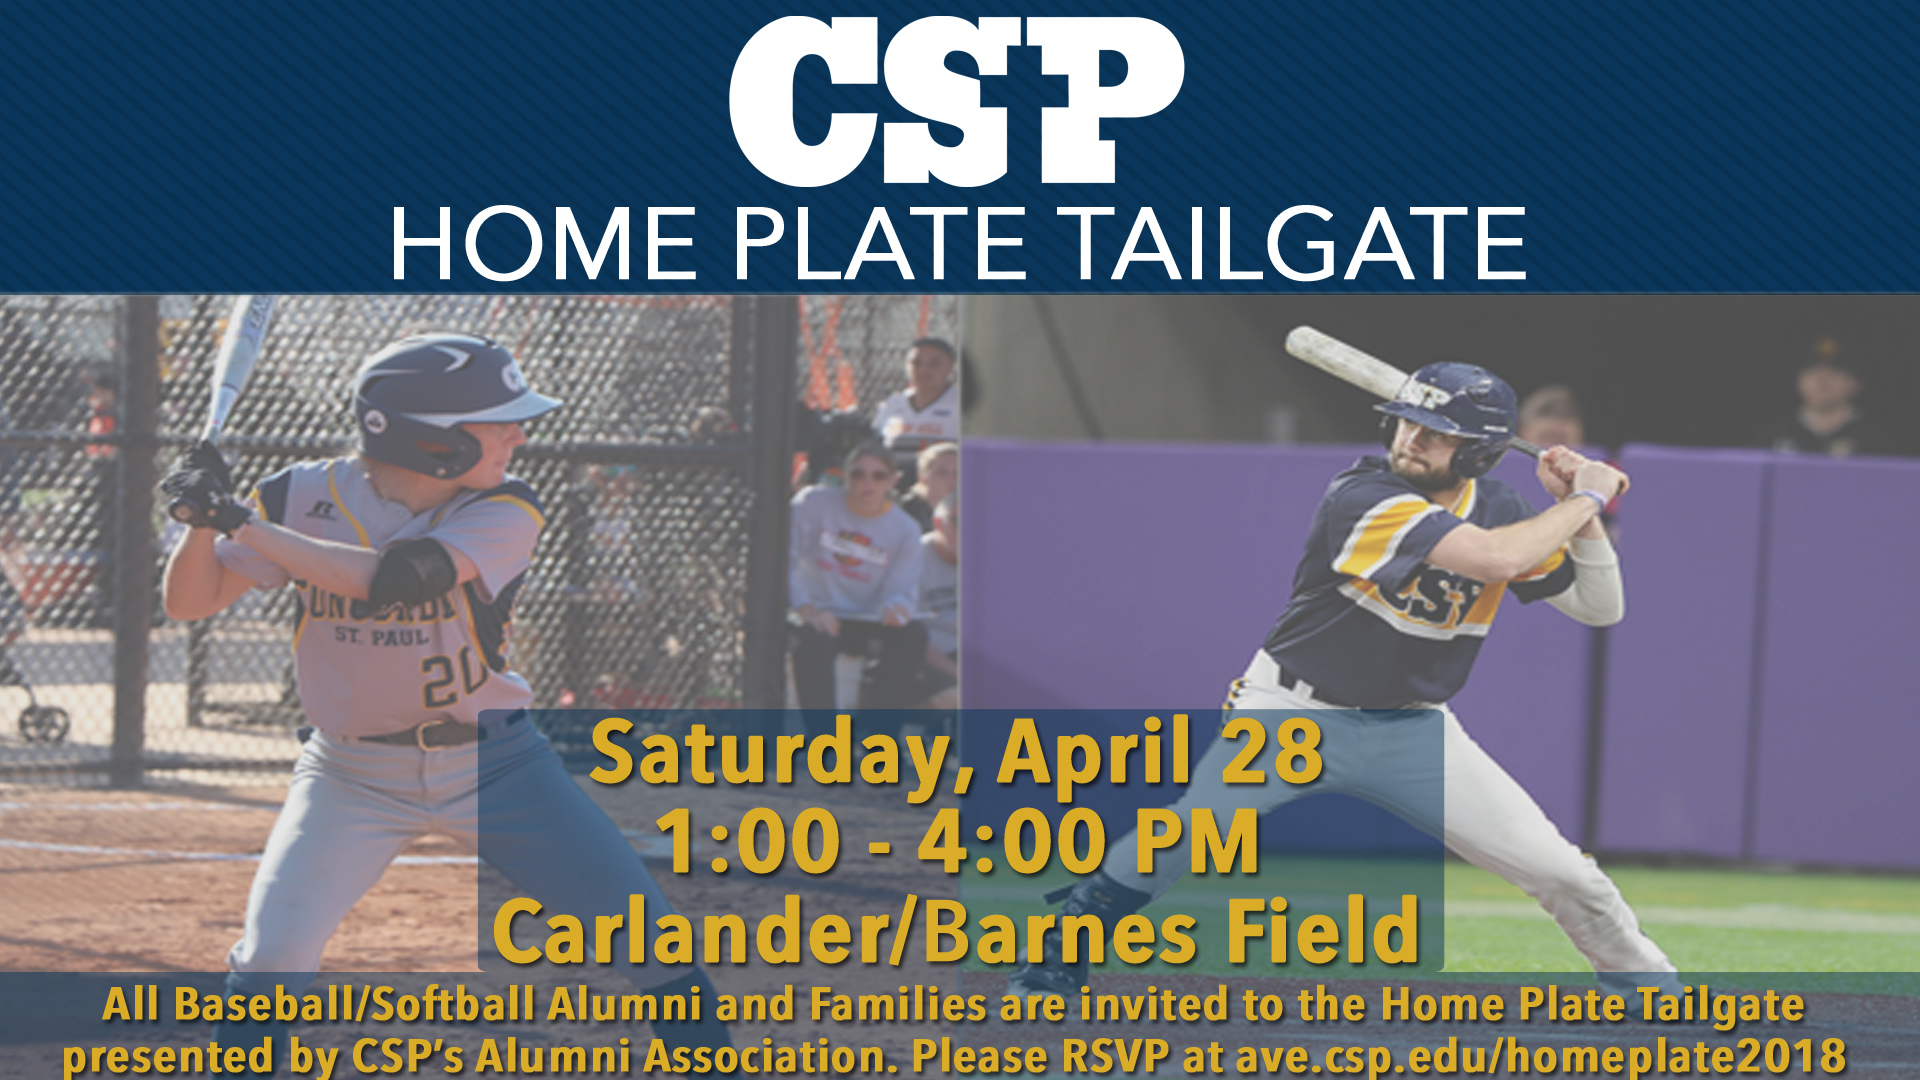 Csp Hosting Home Plate Tailgate On April 28 For Baseball And